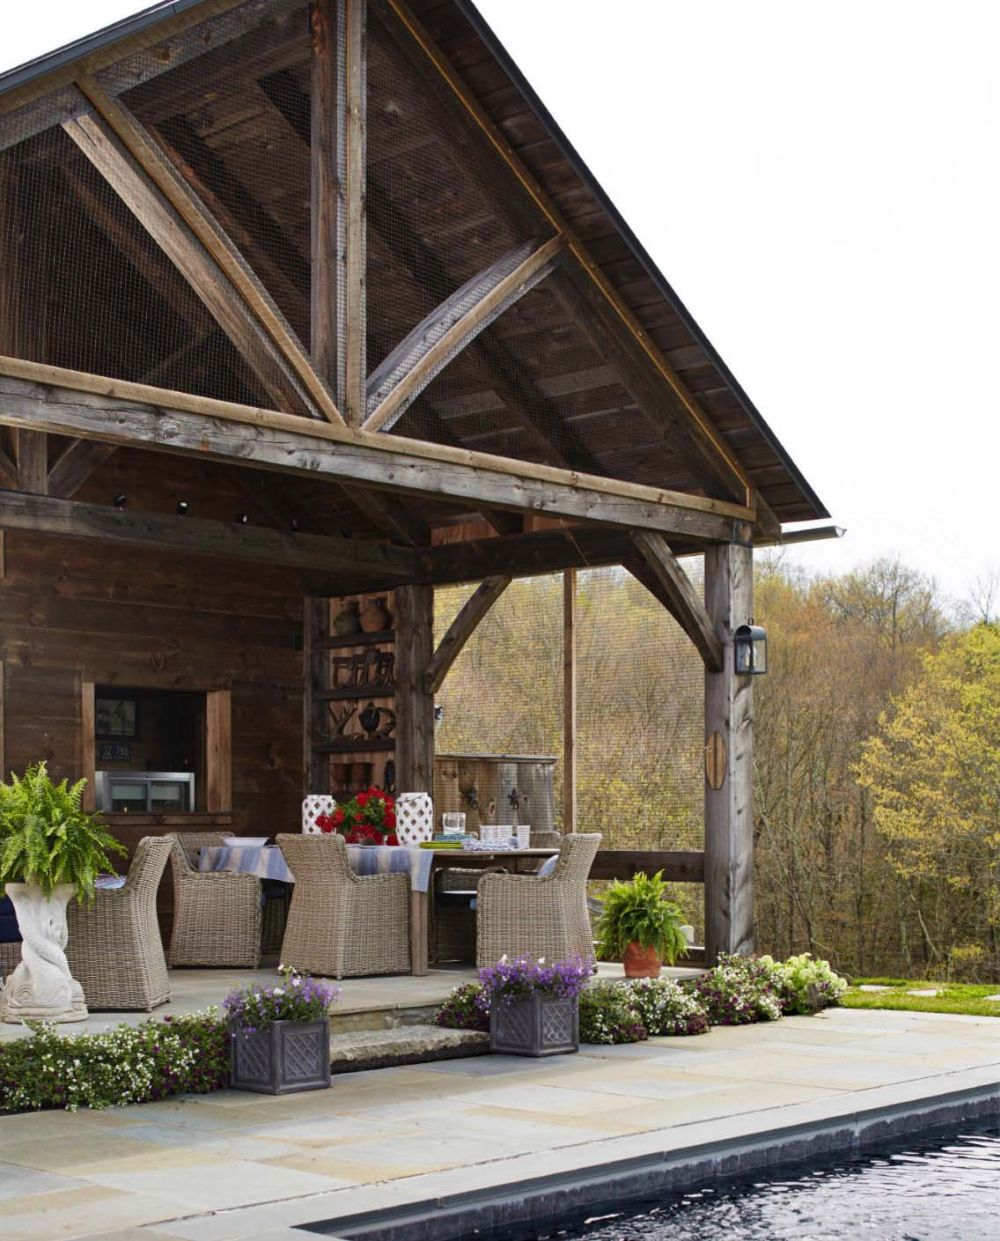 The house features a covered porch on one side, with an outdoor kitchen and comfortable furniture